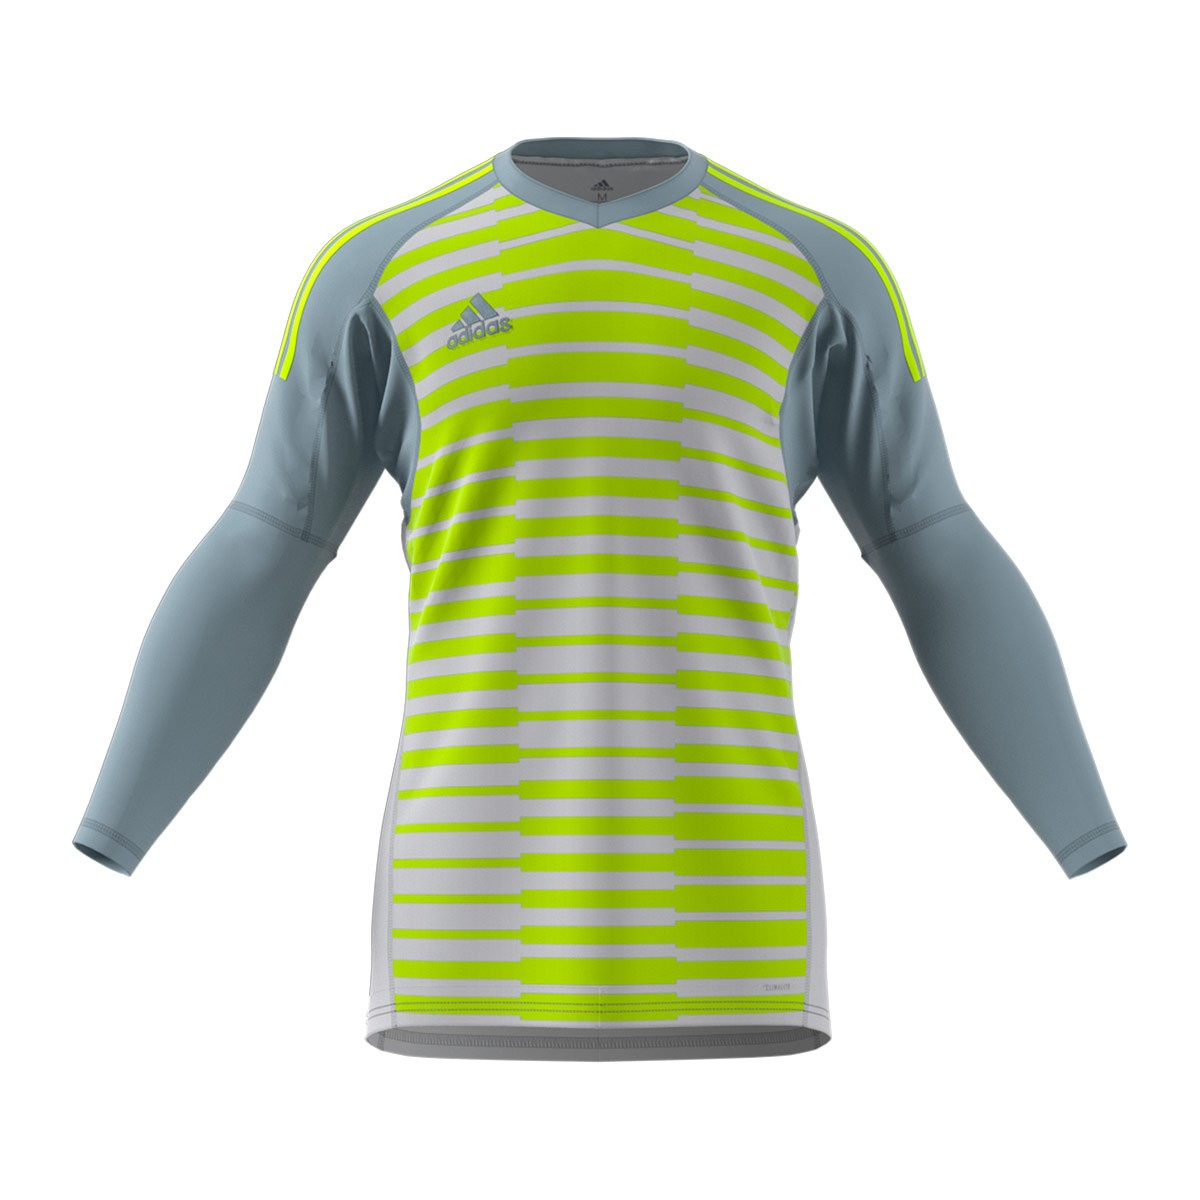 a11c421054b Jersey adidas AdiPro 18 Goalkeeper Longsleeve Light grey-Semi solar yellow  - Football store Fútbol Emotion